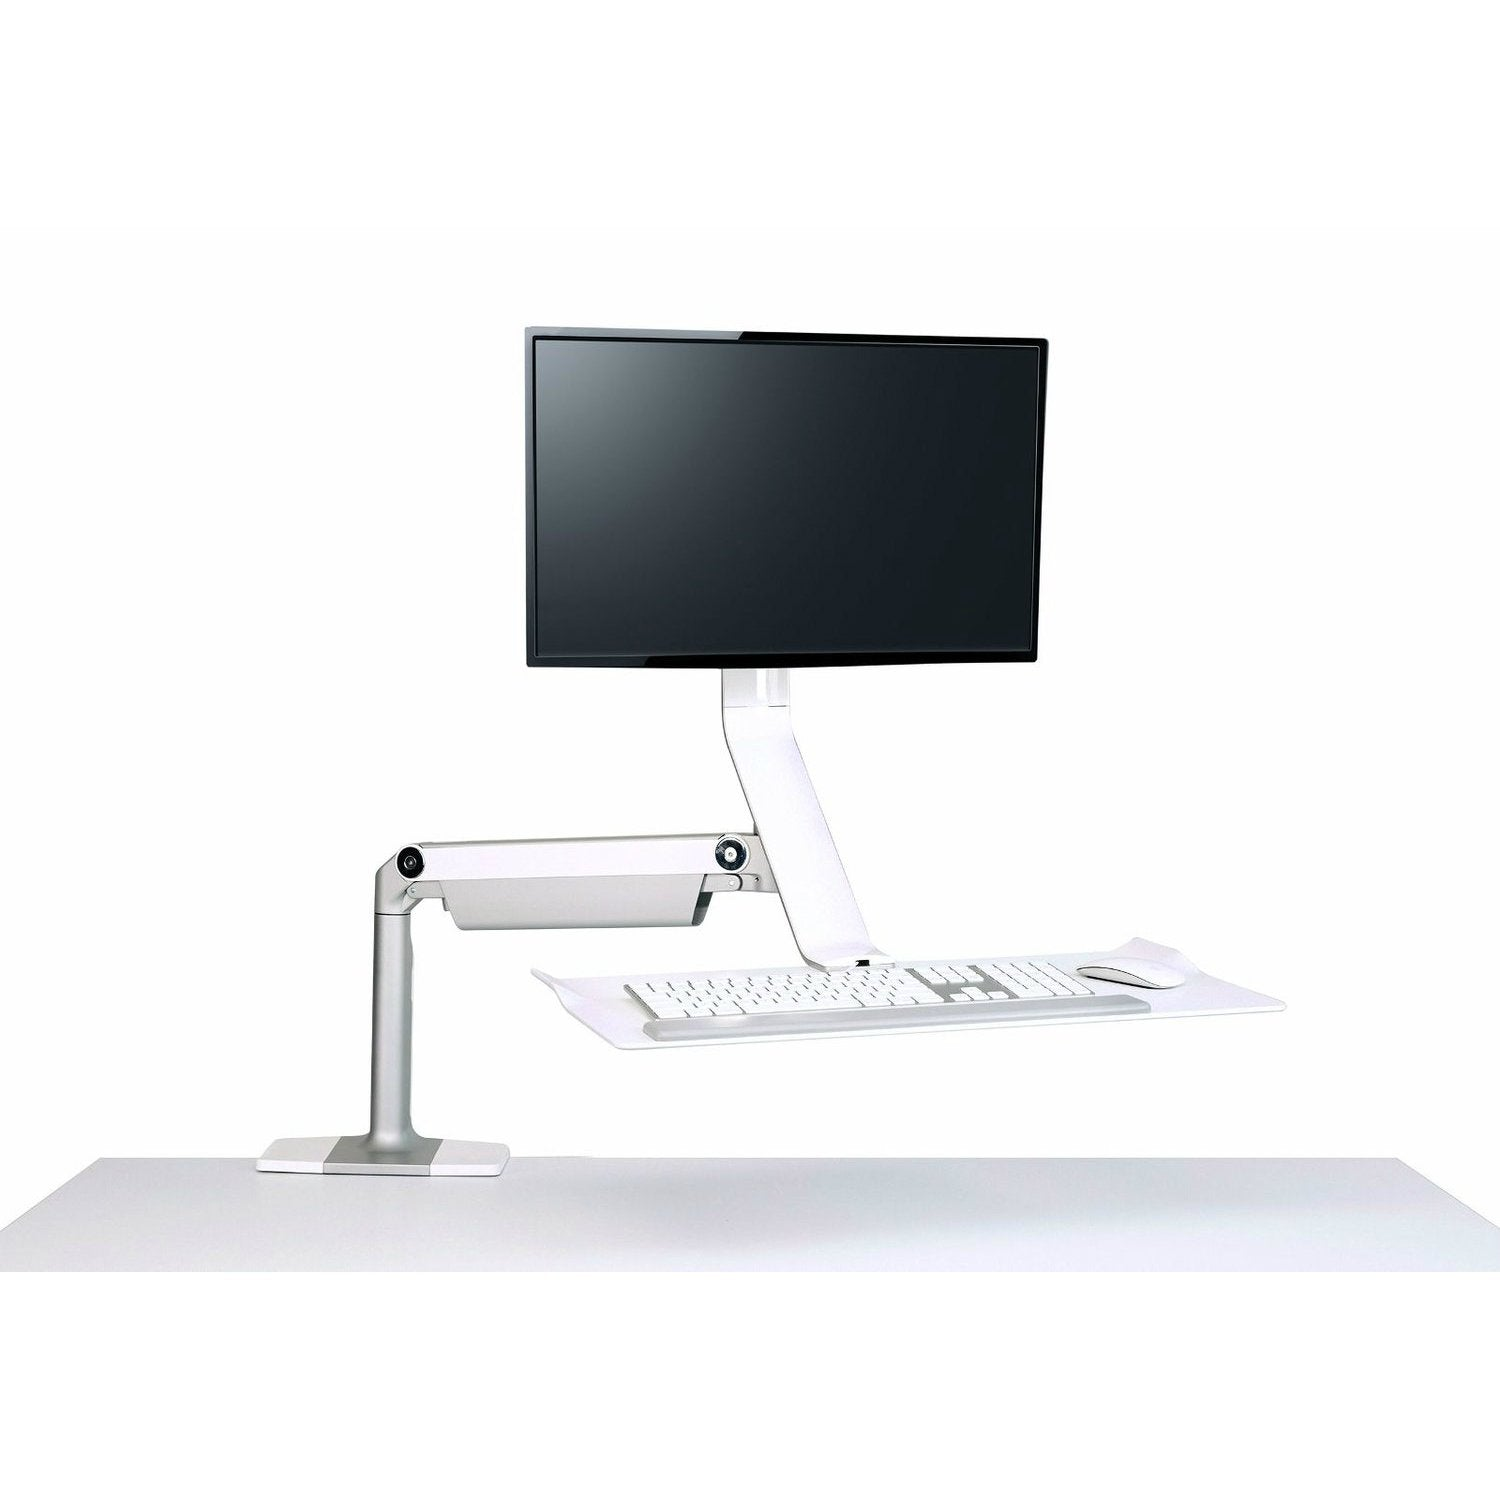 Humanscale - Humanscale QuickStand Lite - Duckys Office Furniture